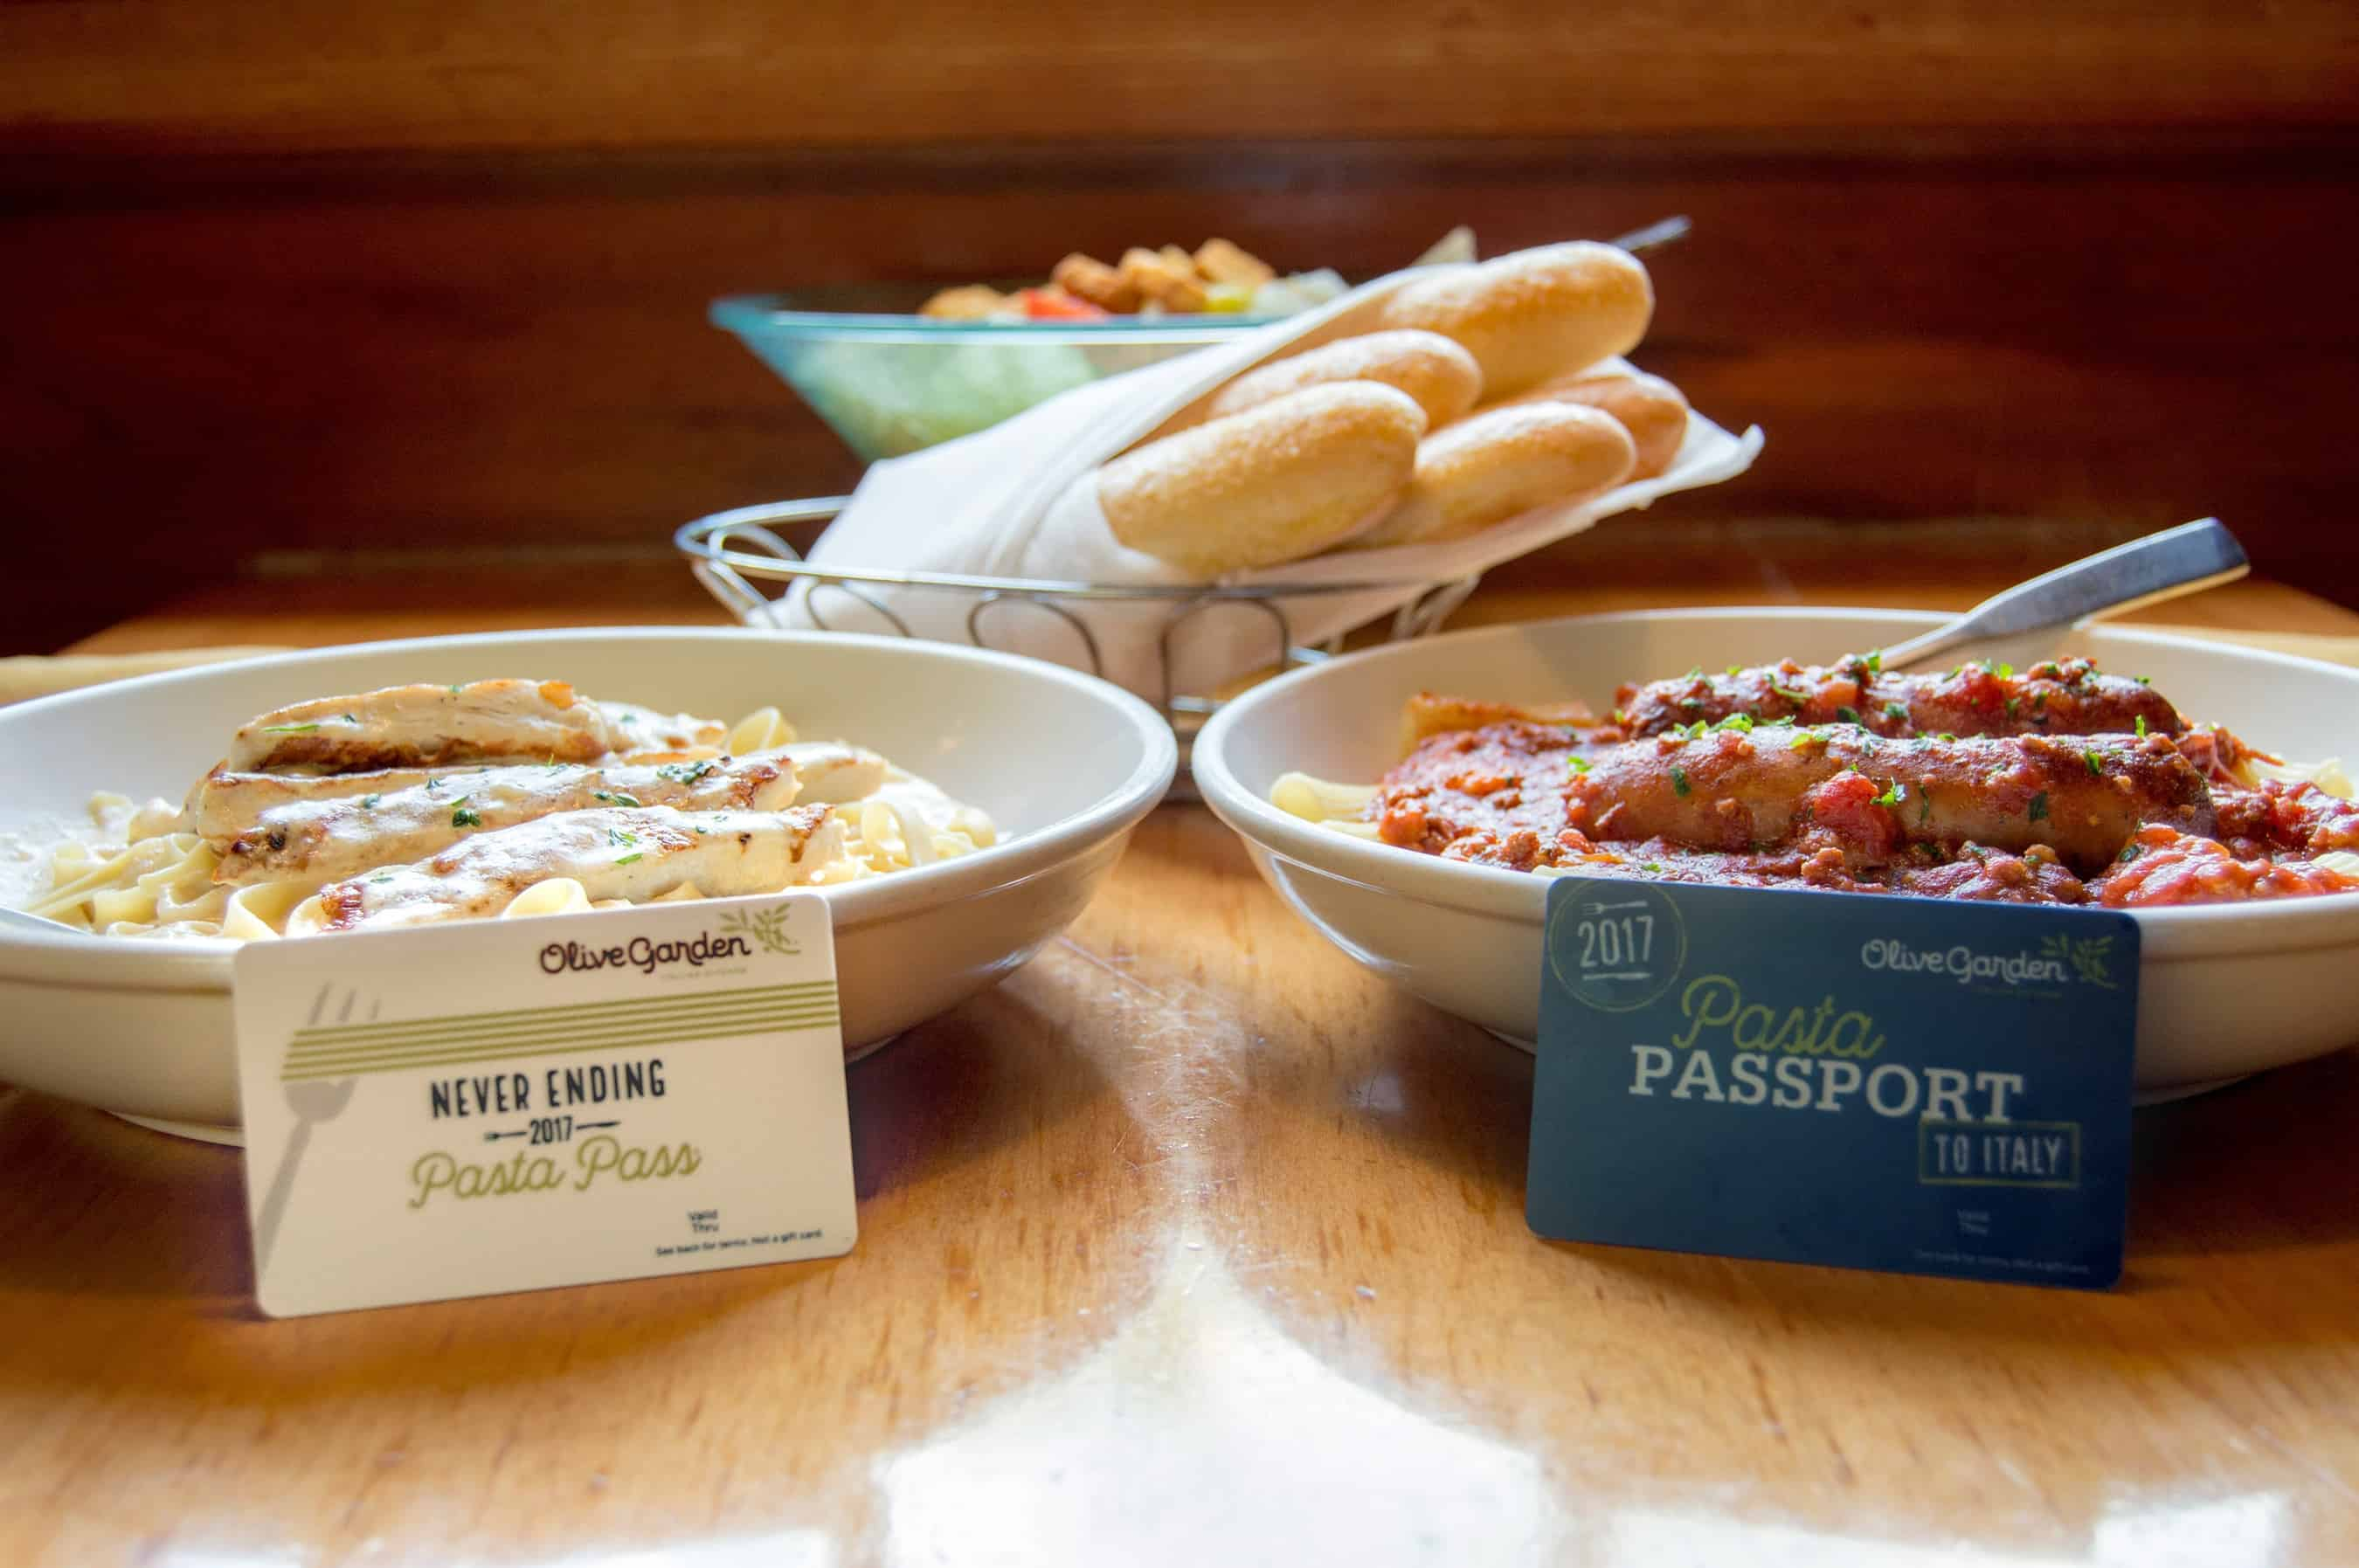 Olive garden never ending pasta mile high on the cheap for Tour of italy olive garden price